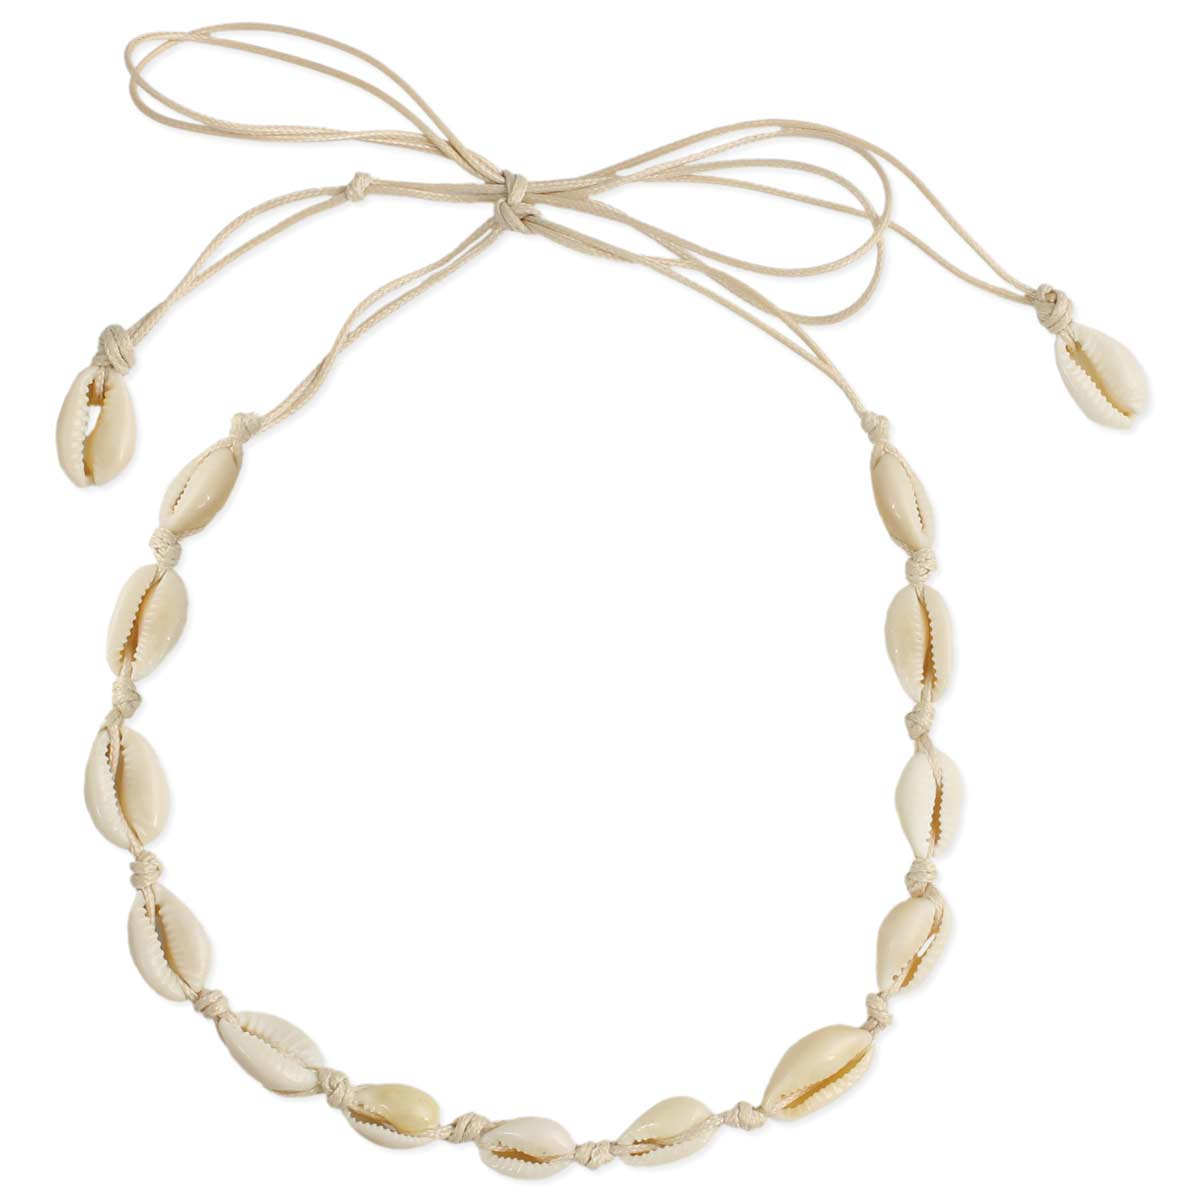 Tan cord cowry shell choker necklace